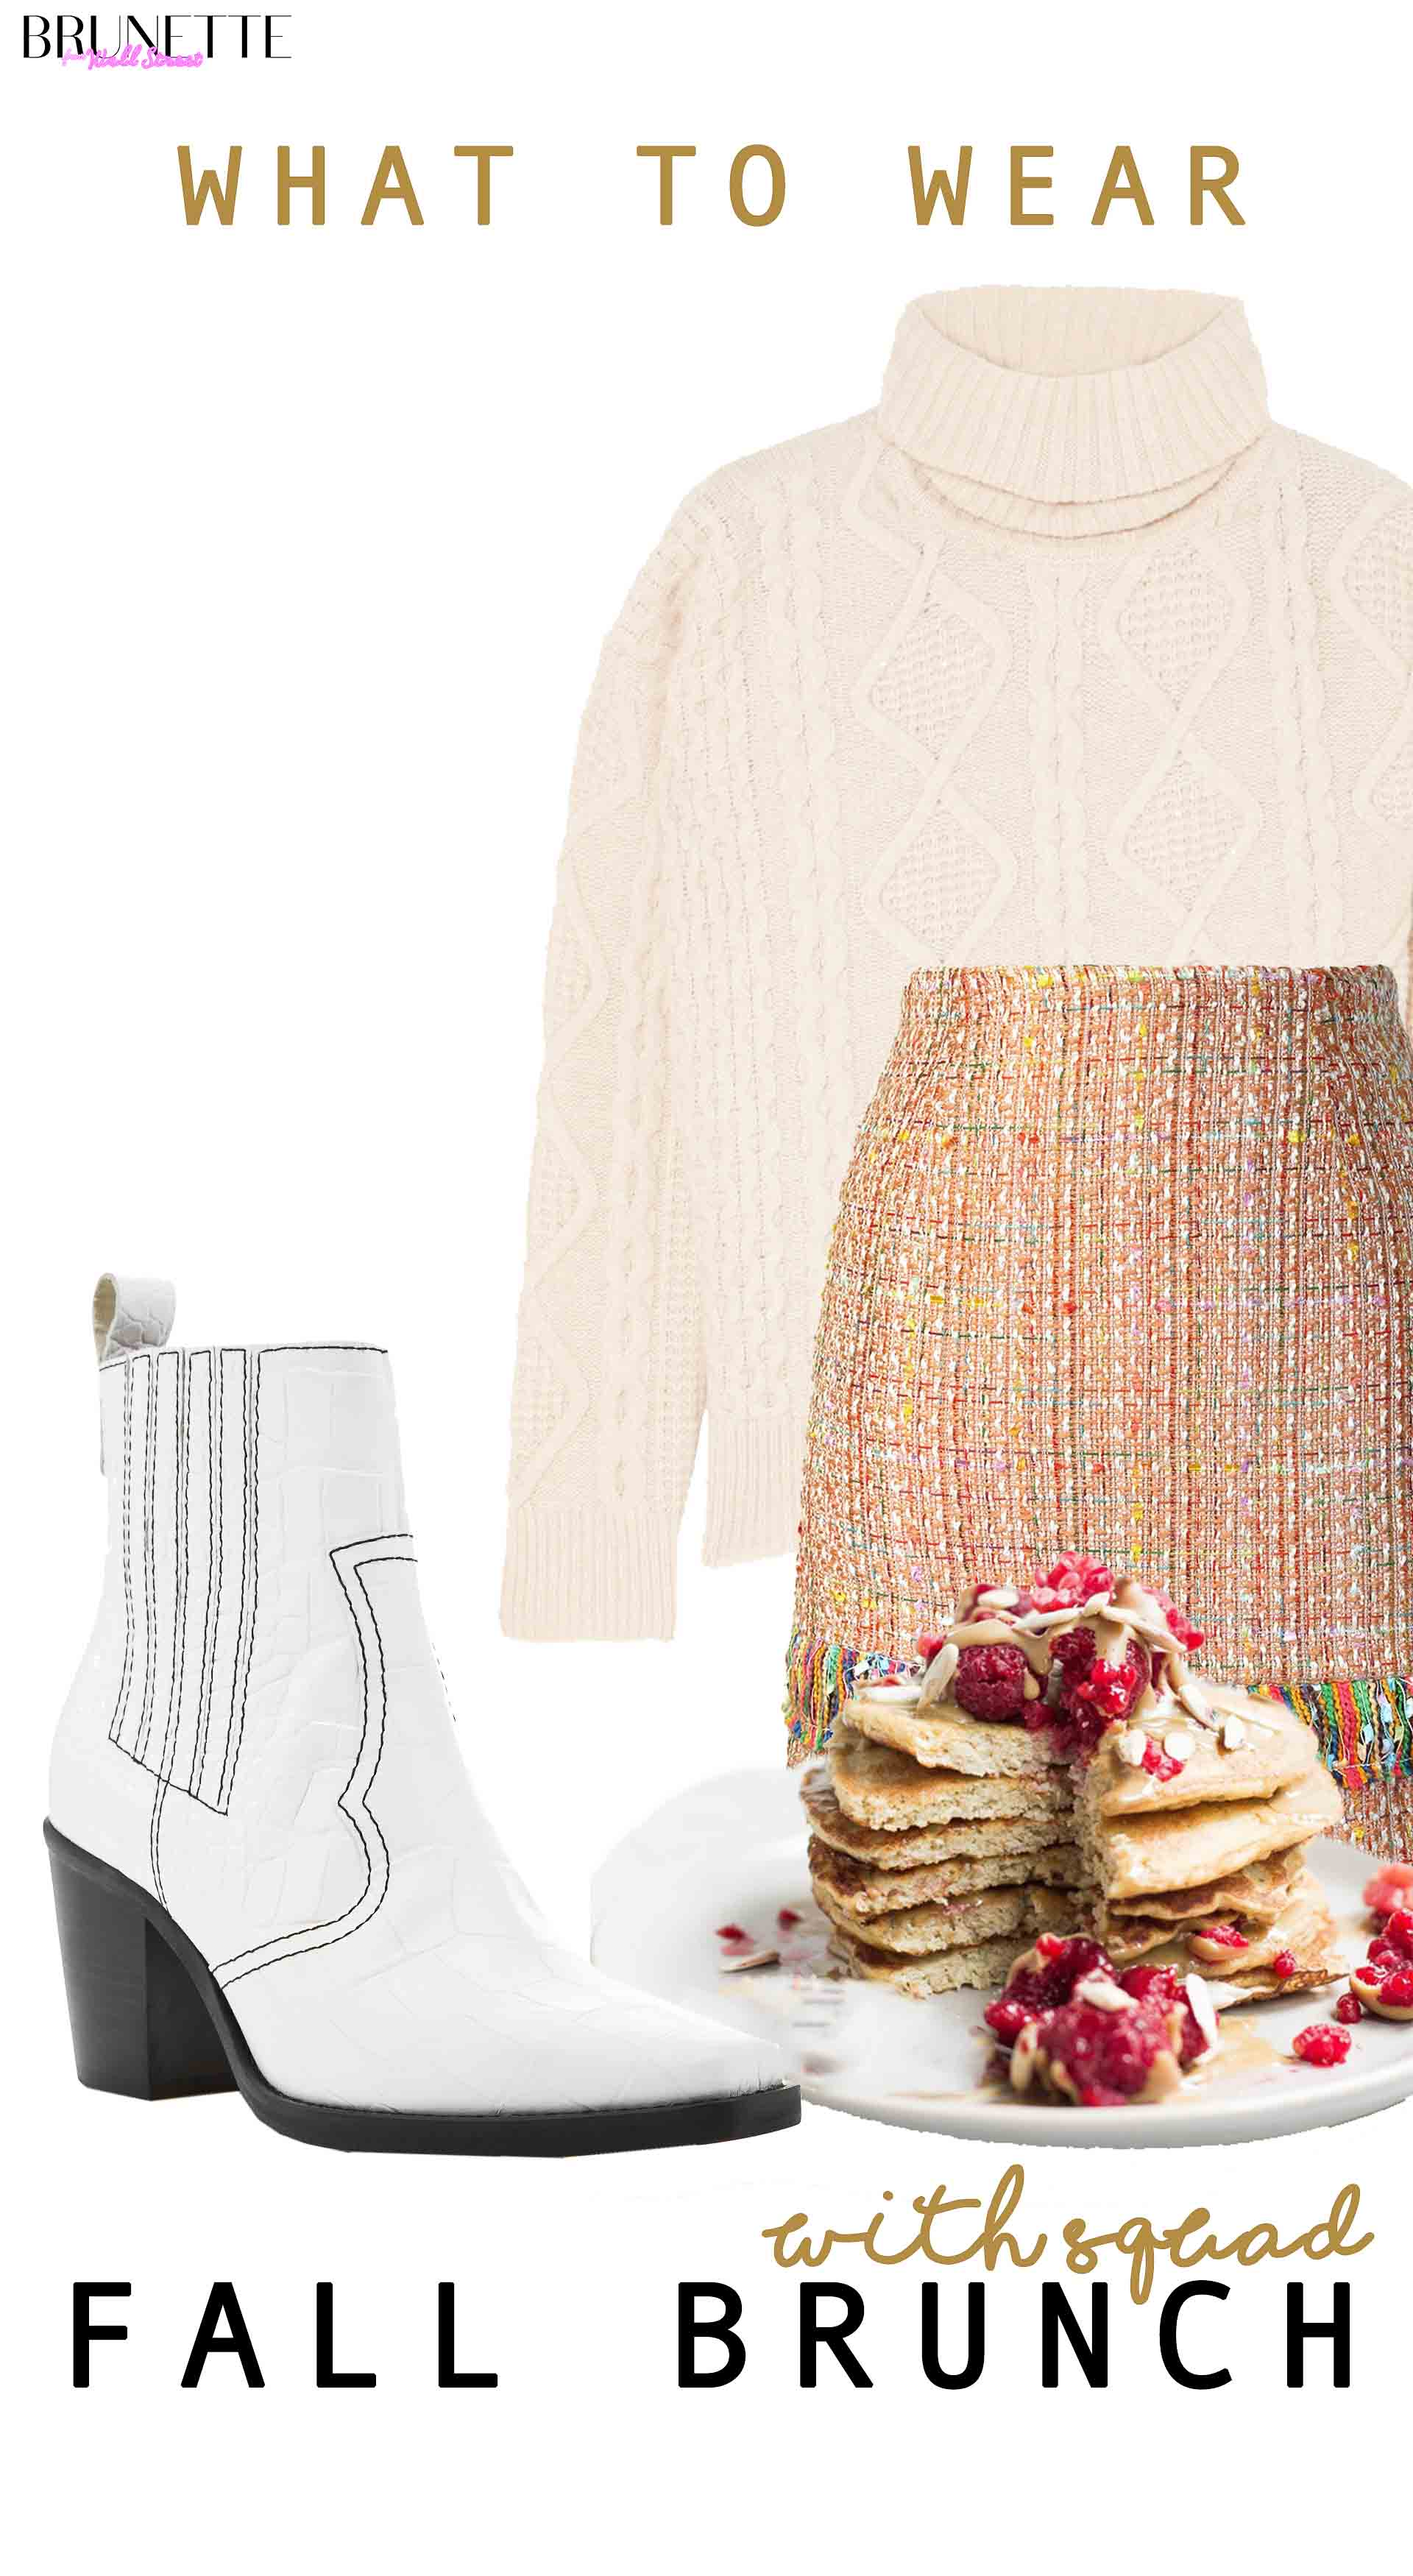 pancakes, Ganni boots mini skirt, sweater with text overlay What to wear for fall brunch with squad